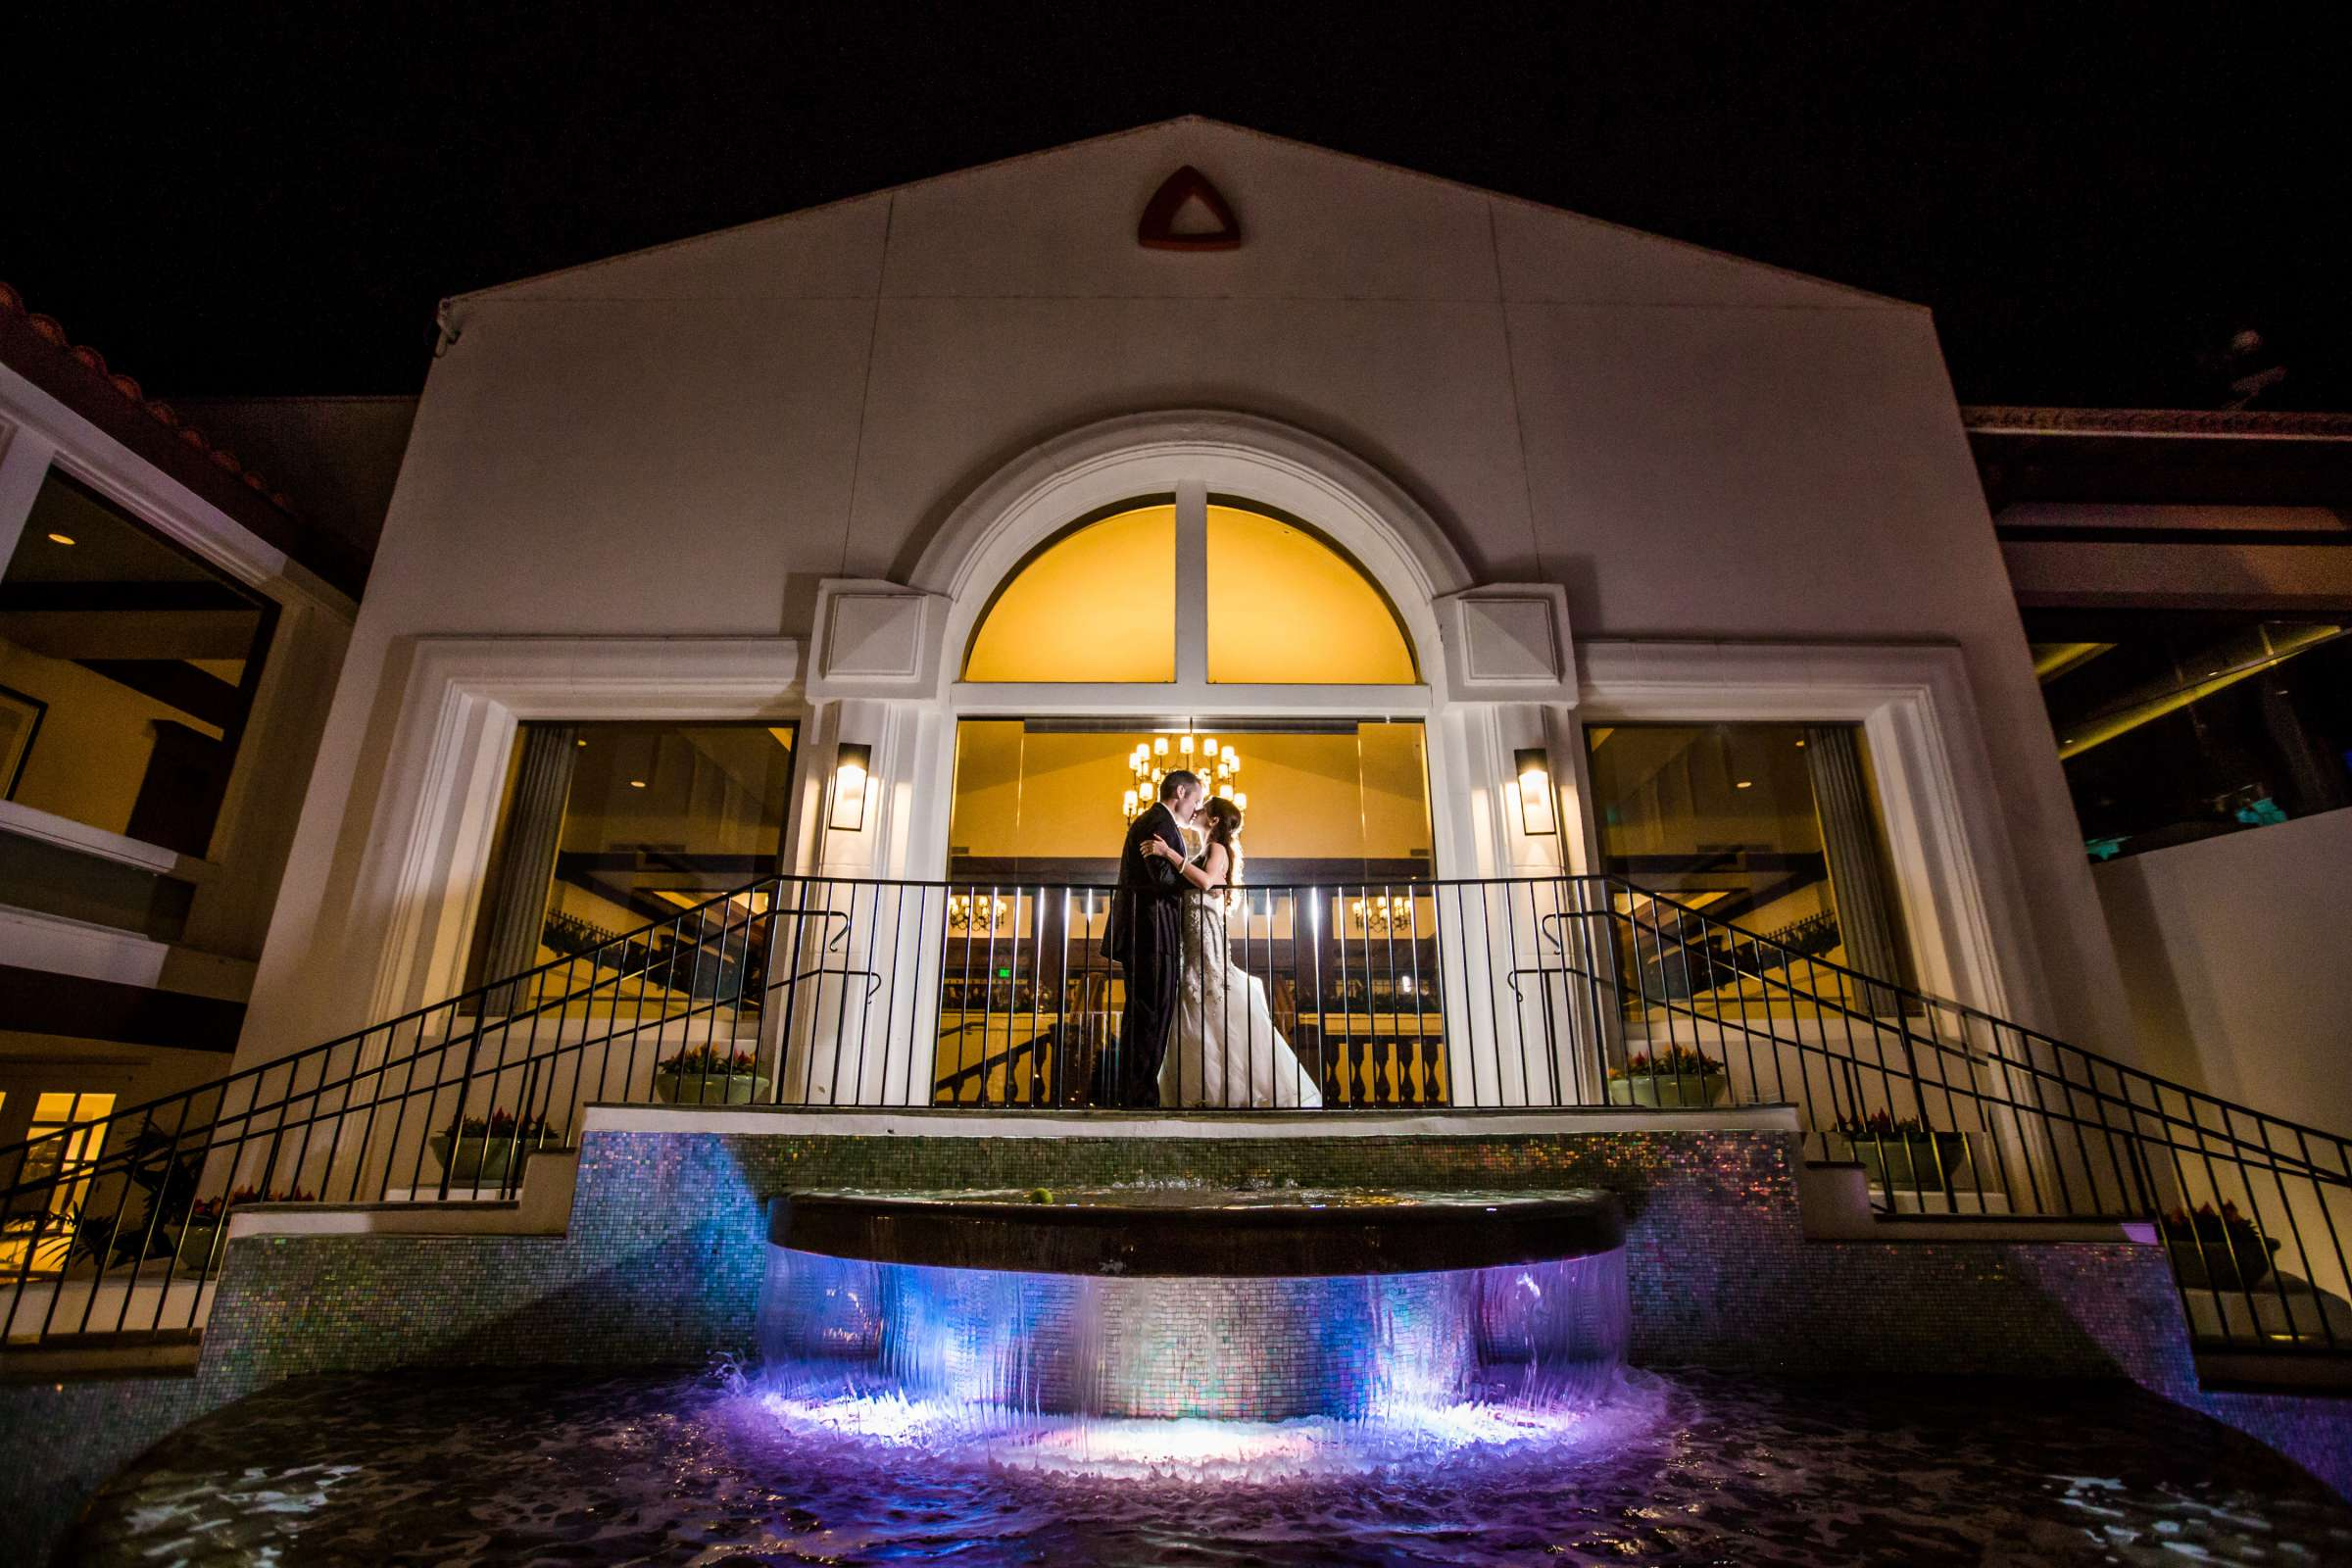 Omni La Costa Resort & Spa Wedding coordinated by EverAfter Events, Natalie and Greg Wedding Photo #359374 by True Photography